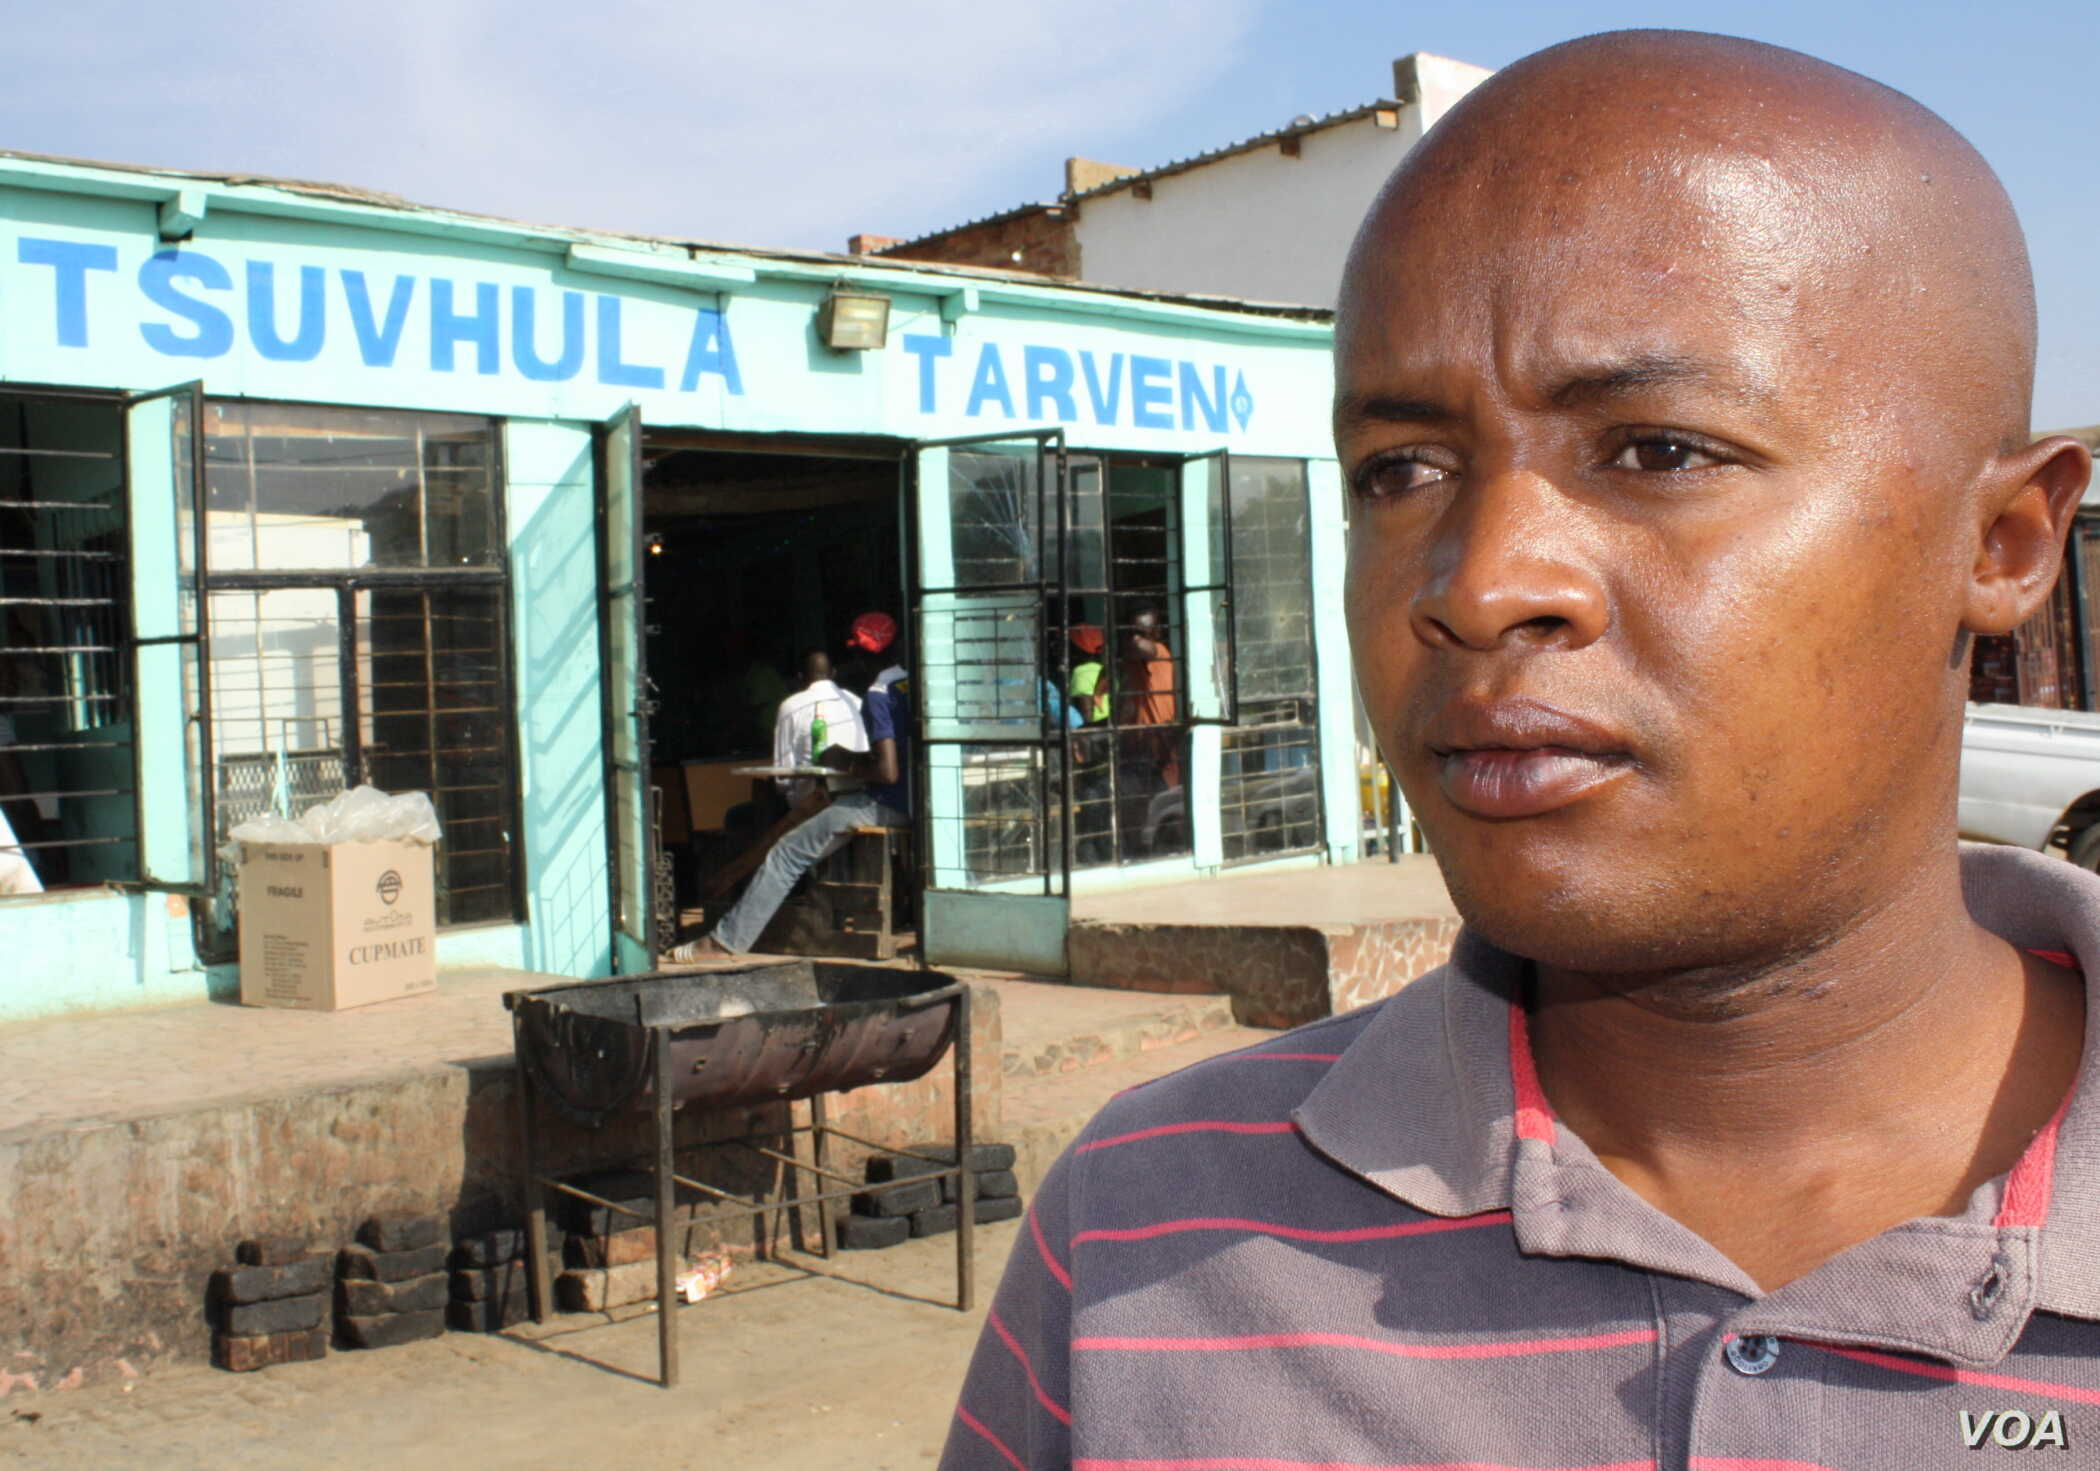 """Community health care worker Brown Lekekela stands outside a tavern in a township in South Africa, where young women often meet older men with whom they have dangerous """"transactional"""" sexual relationships. (D. Taylor/VOA)"""